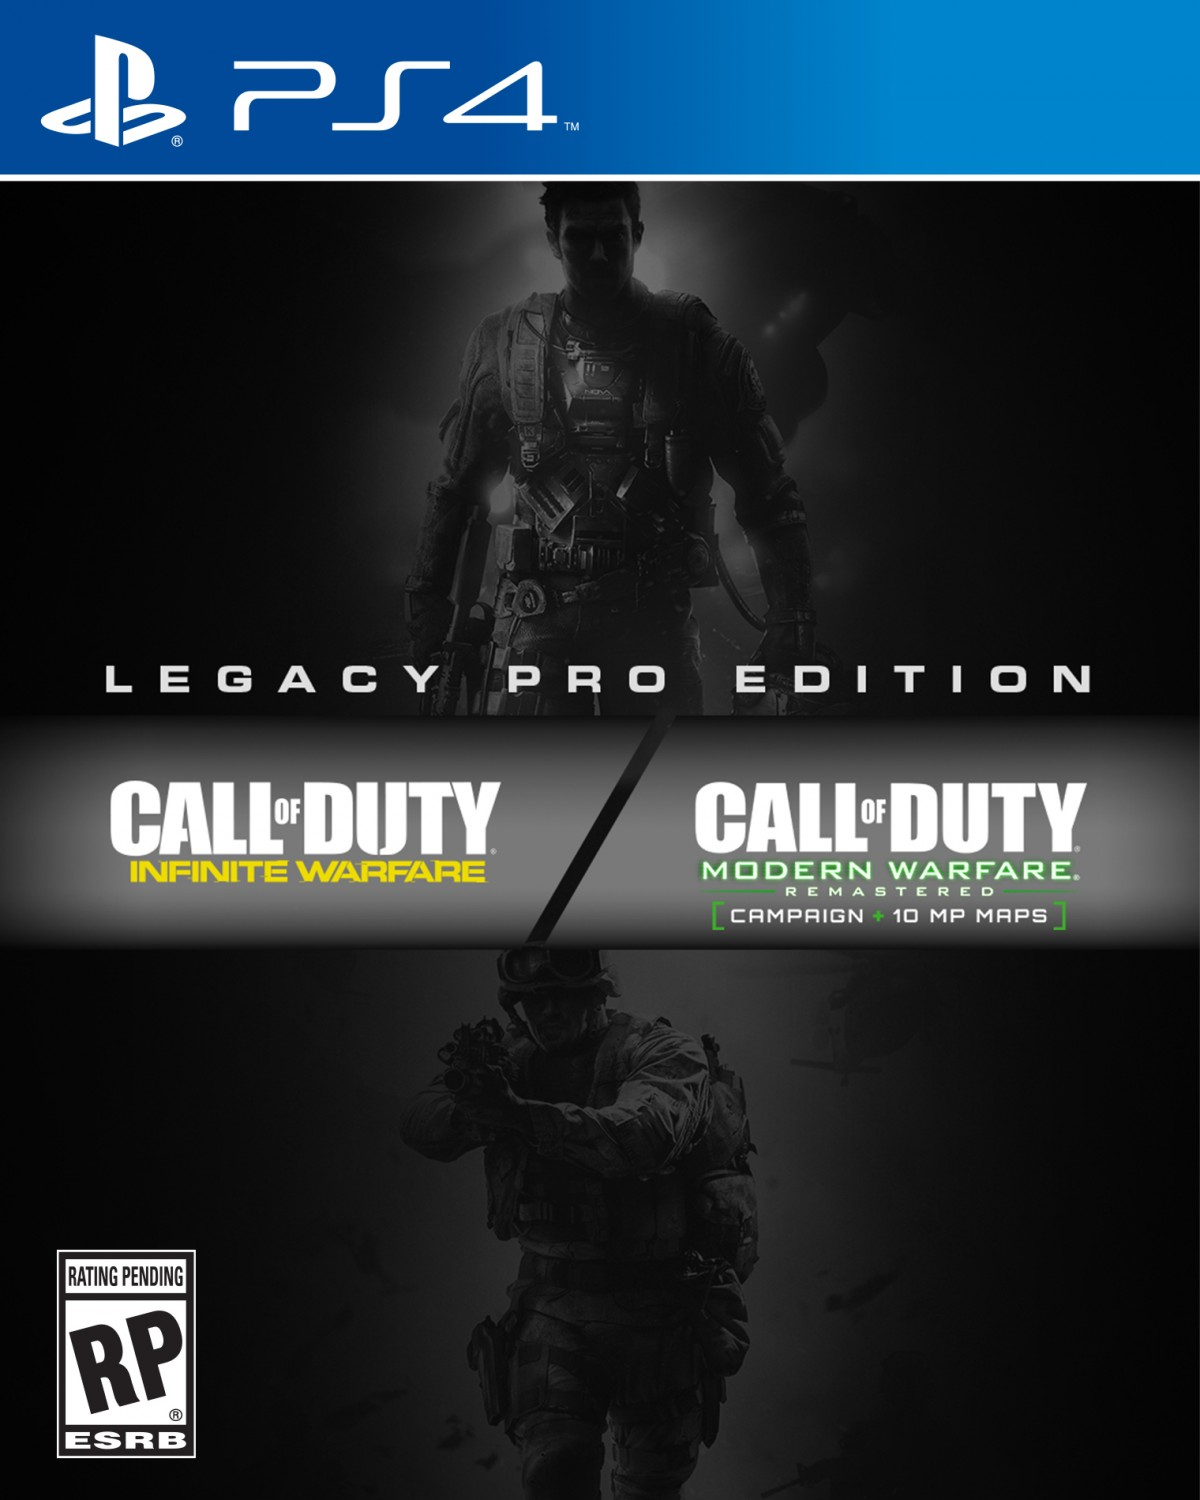 COD-Infinite-Warfare_Legacy-Pro-Edition_PS4-1200x1500